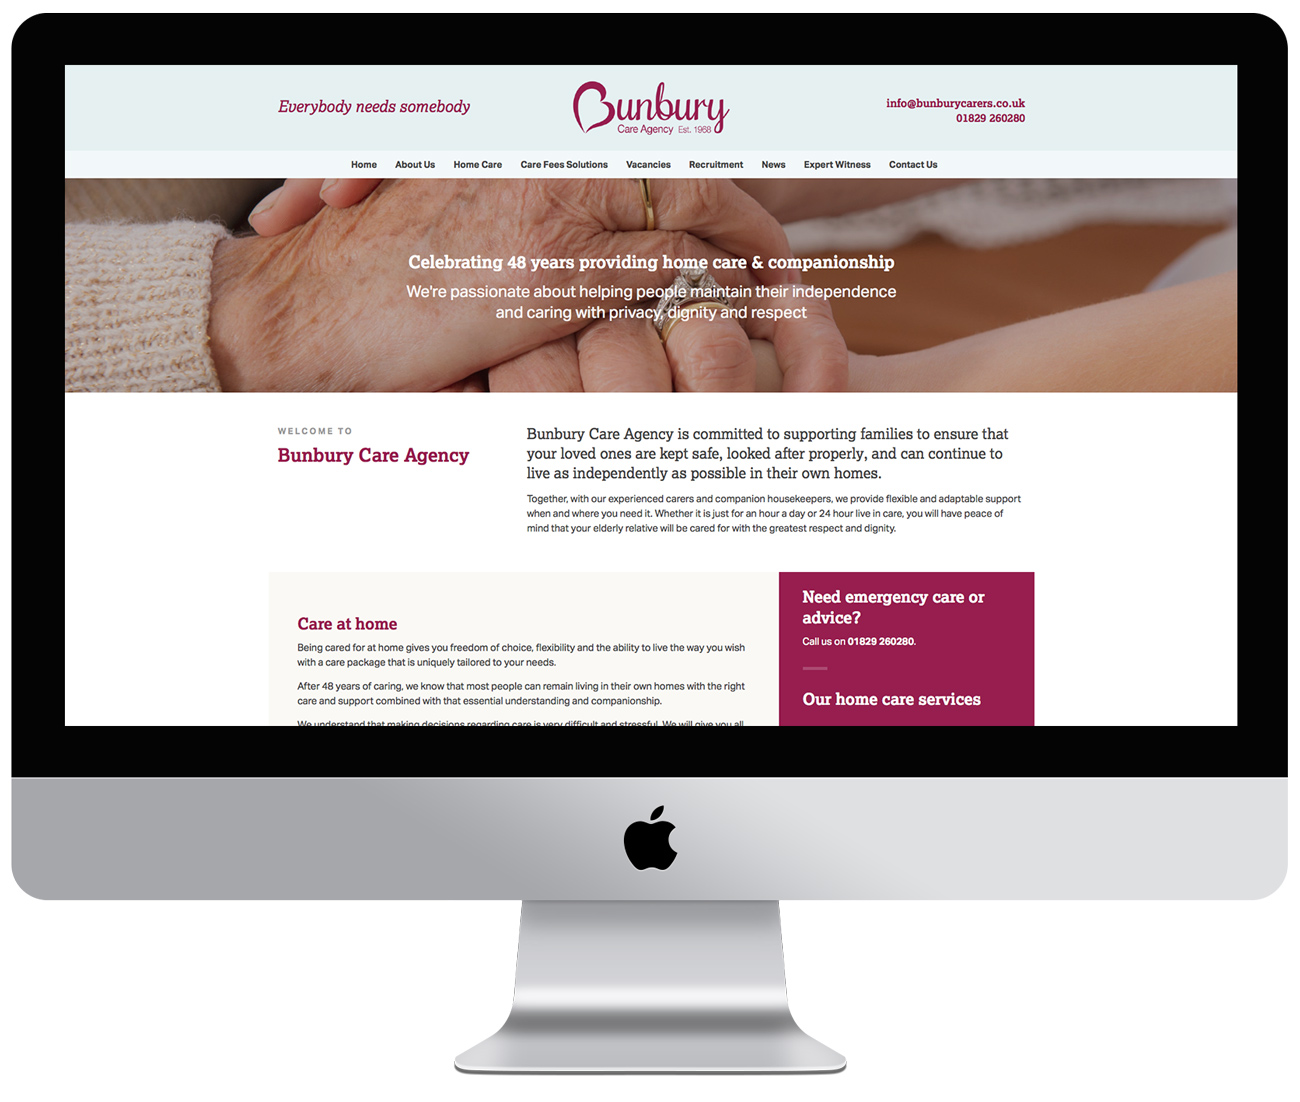 Bunbury Care Agency website